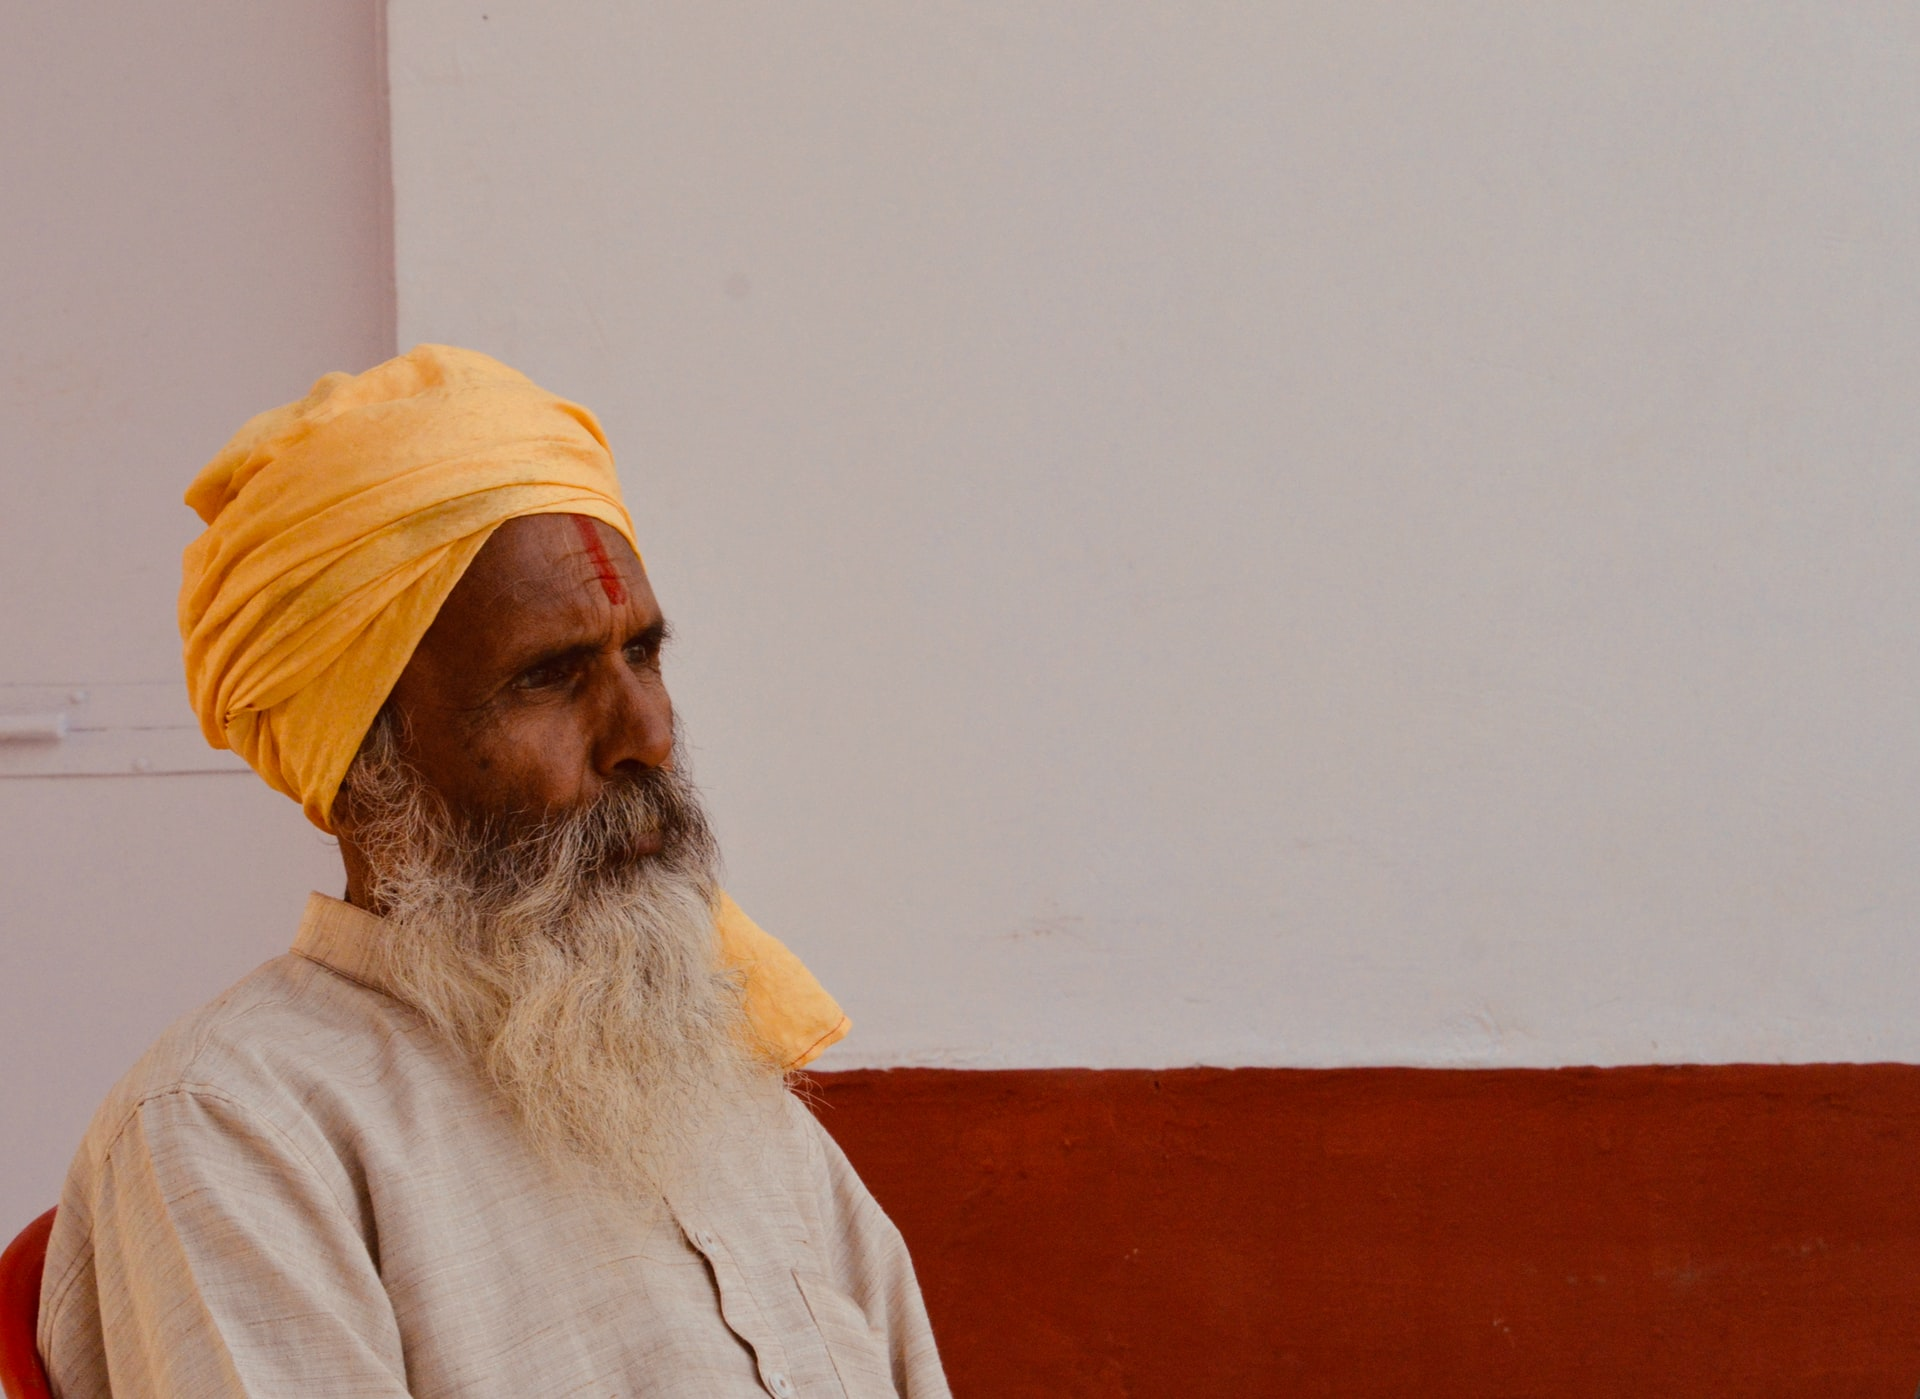 India deals another blow to religious freedom